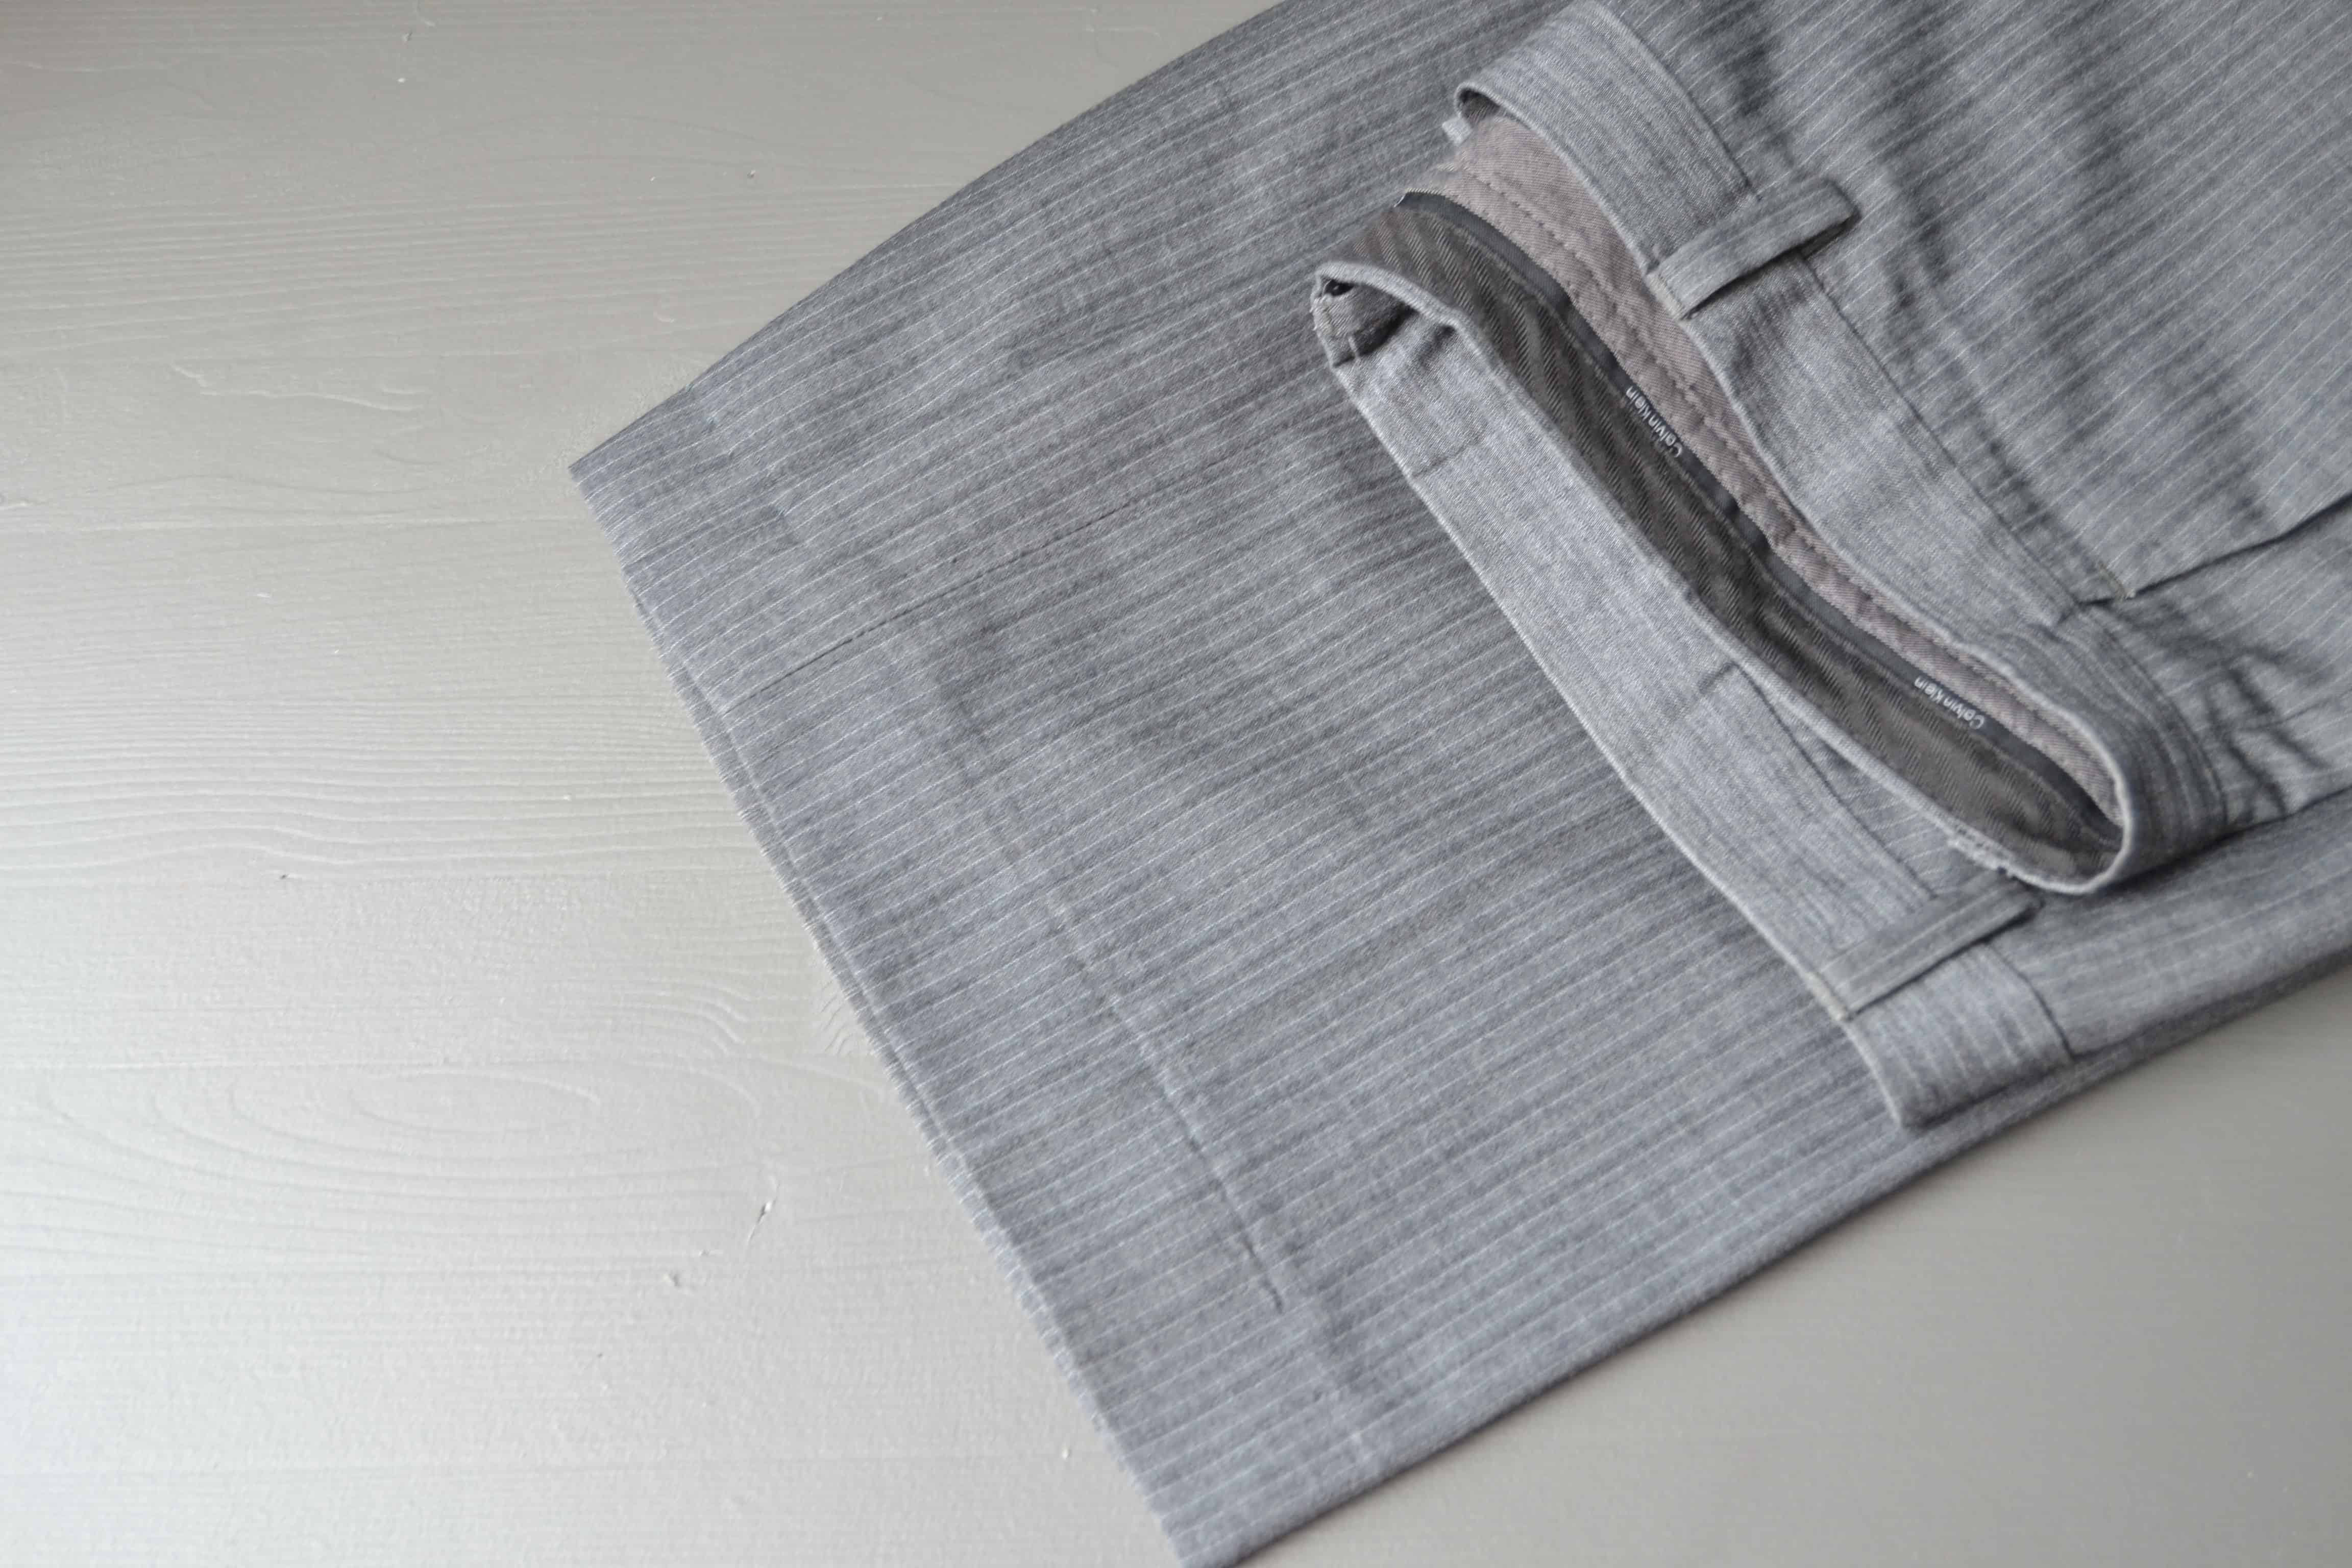 How to Fix a Busted Hem on a Pair of Pants